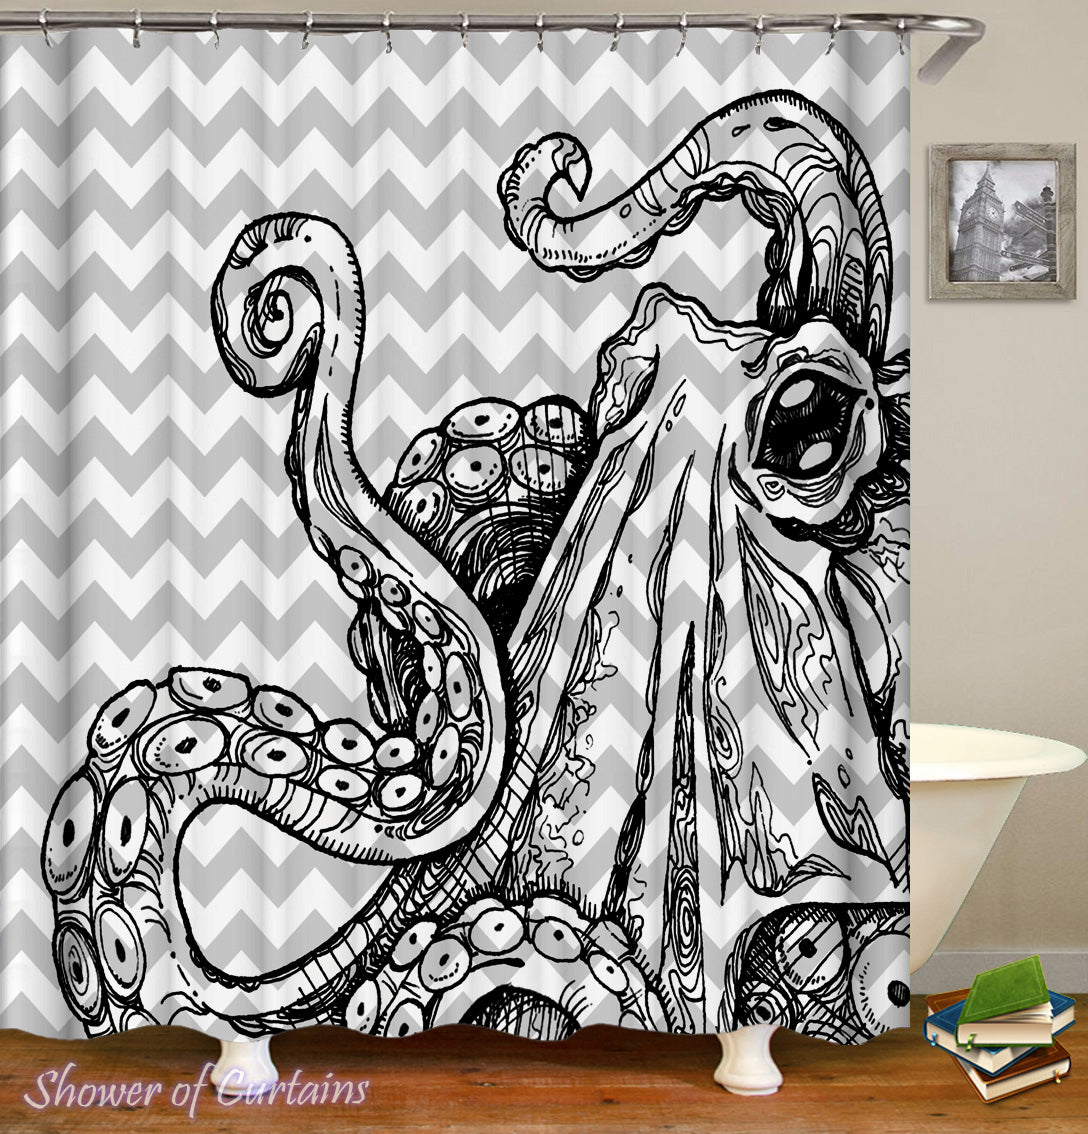 Black N White Octopus Shower Curtain